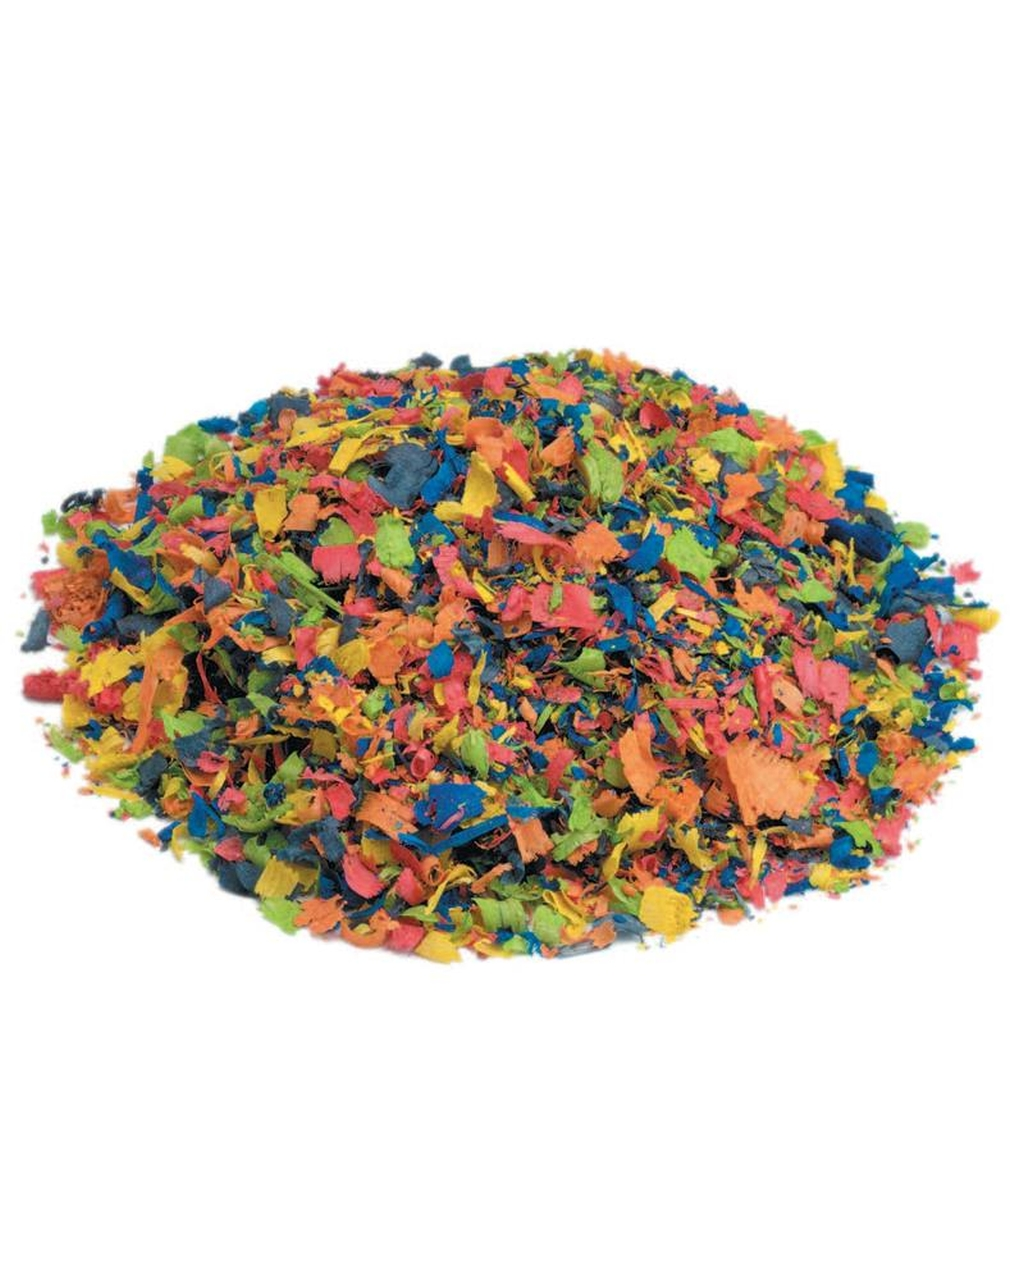 Coloured Wood Chippings 100g